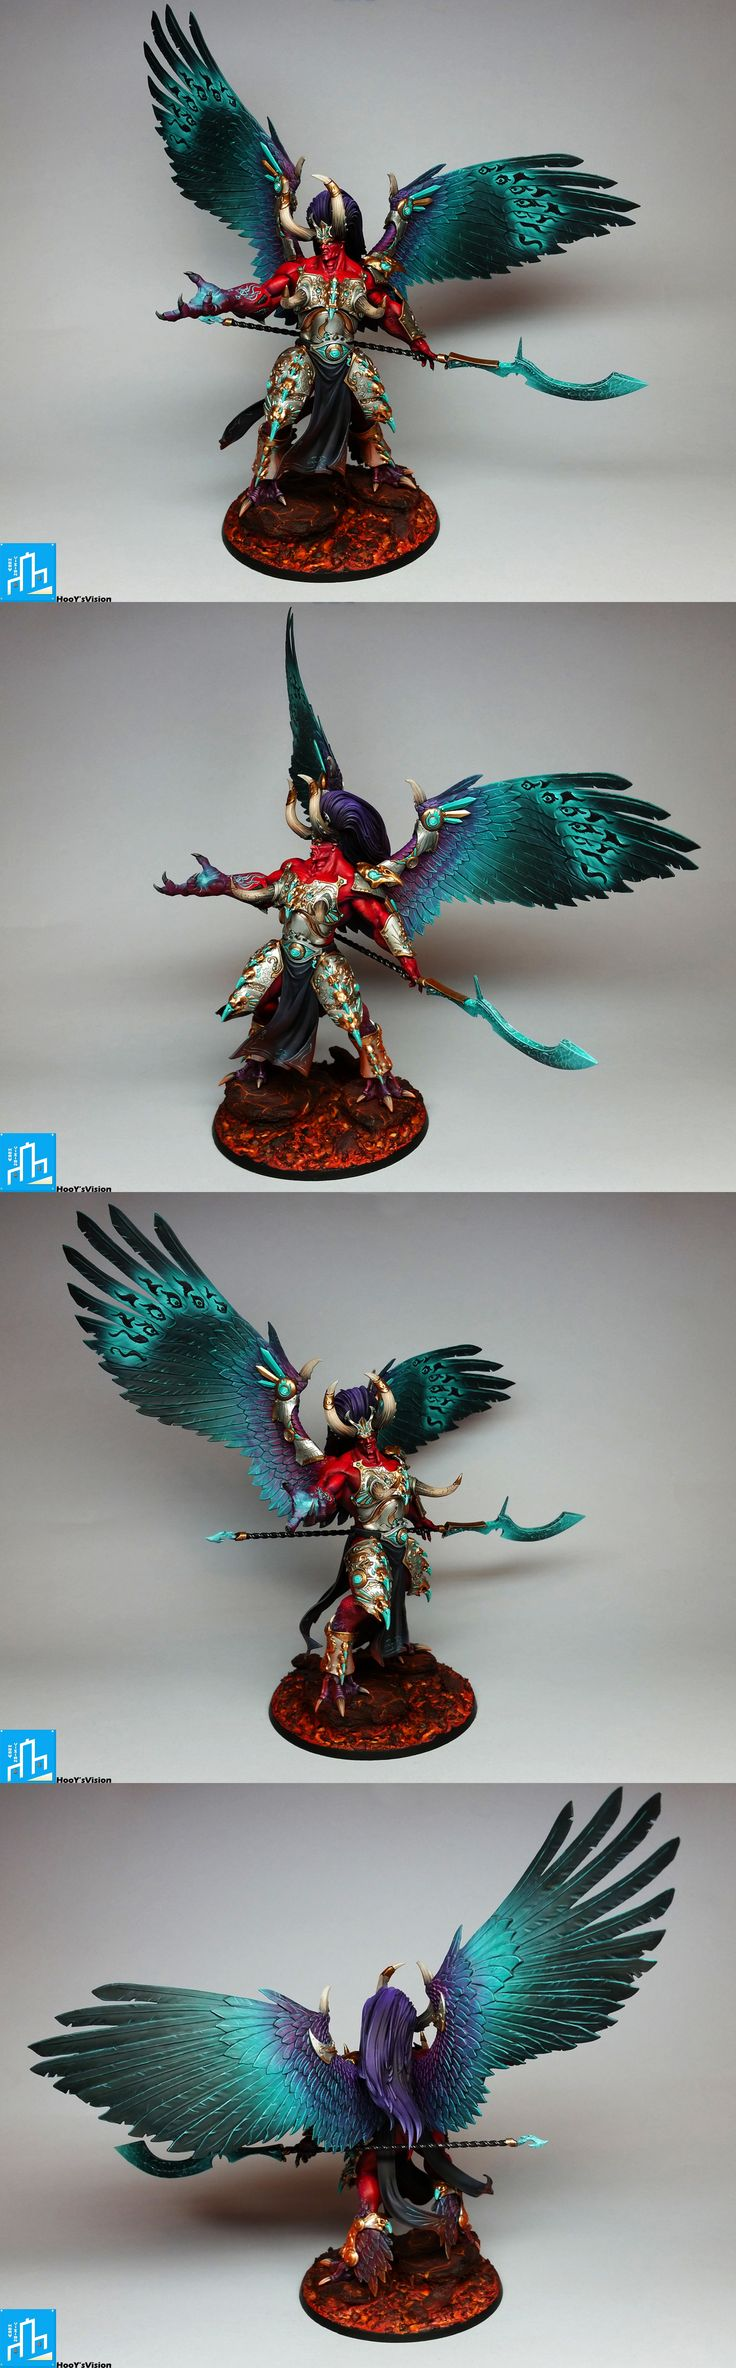 HooY's project log(NMM)- Inquisitor Greyfax - Page 5 - + HALL OF HONOUR + - The Bolter and Chainsword